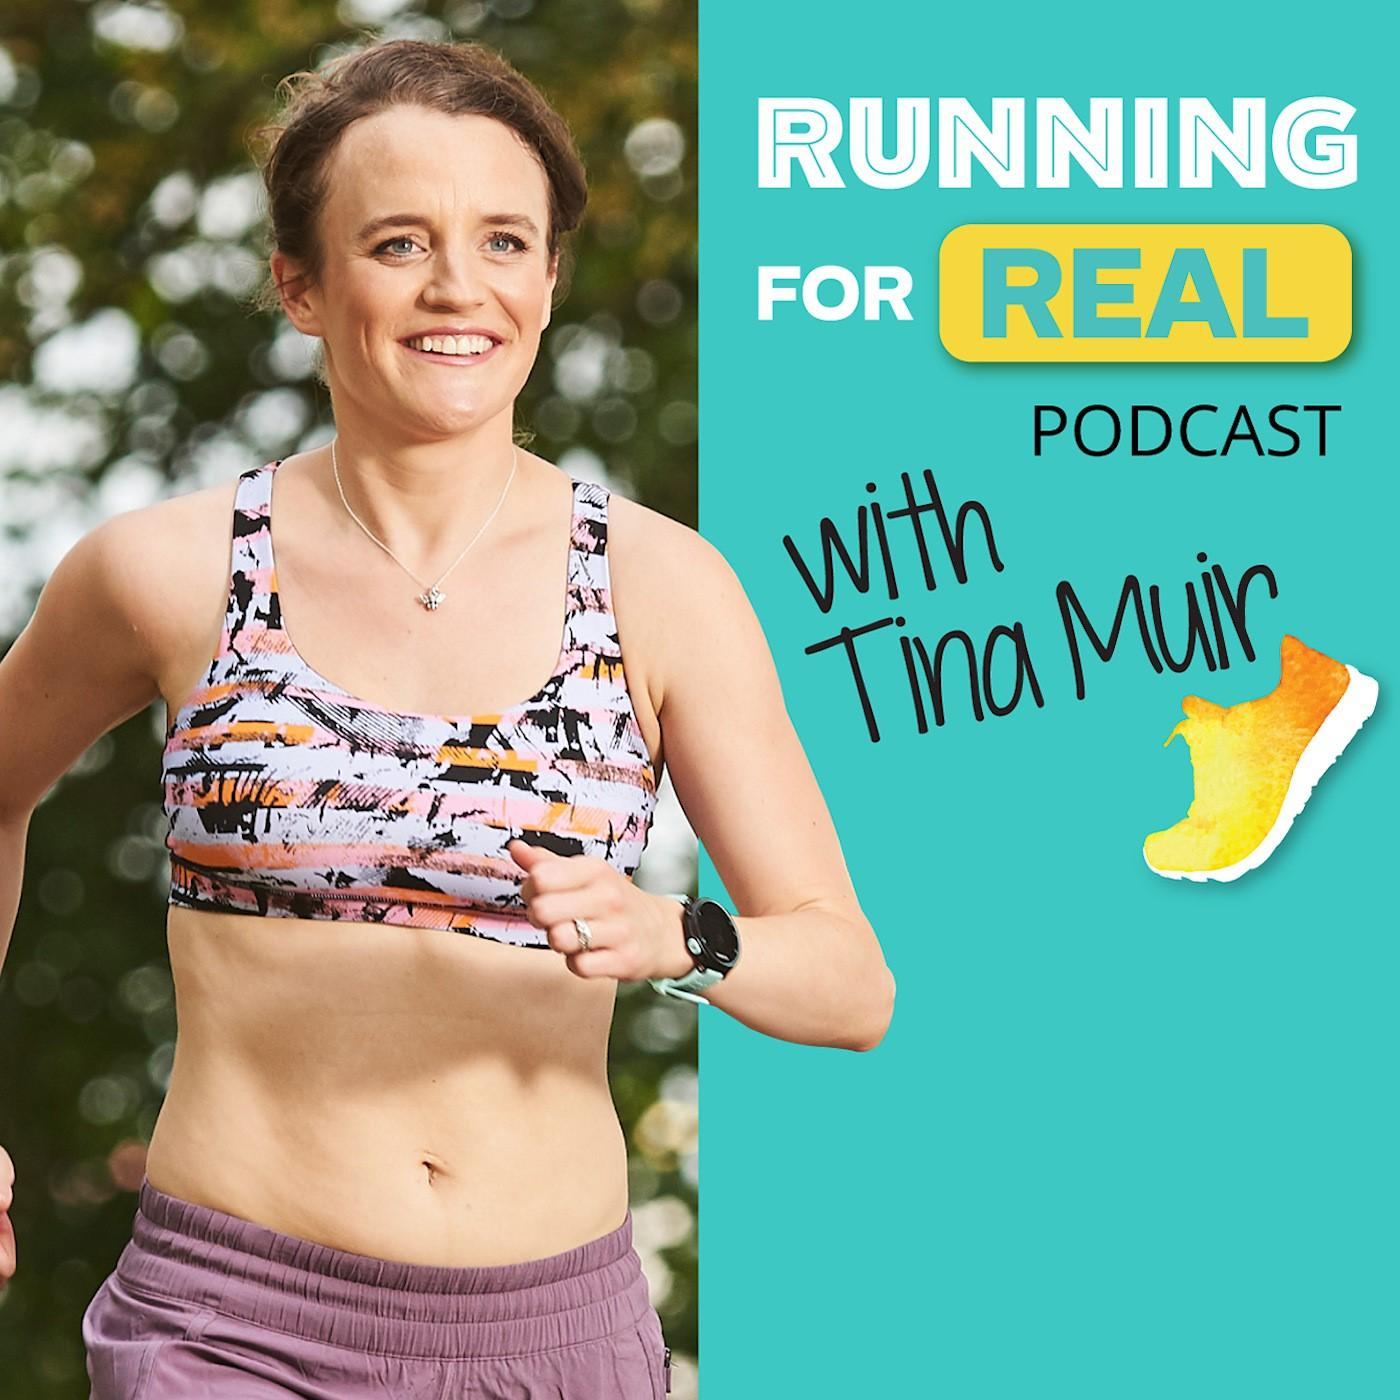 Molly Huddle: Olympic Trials, The State of Running, Shoes, and Her New Podcast -R4R 169